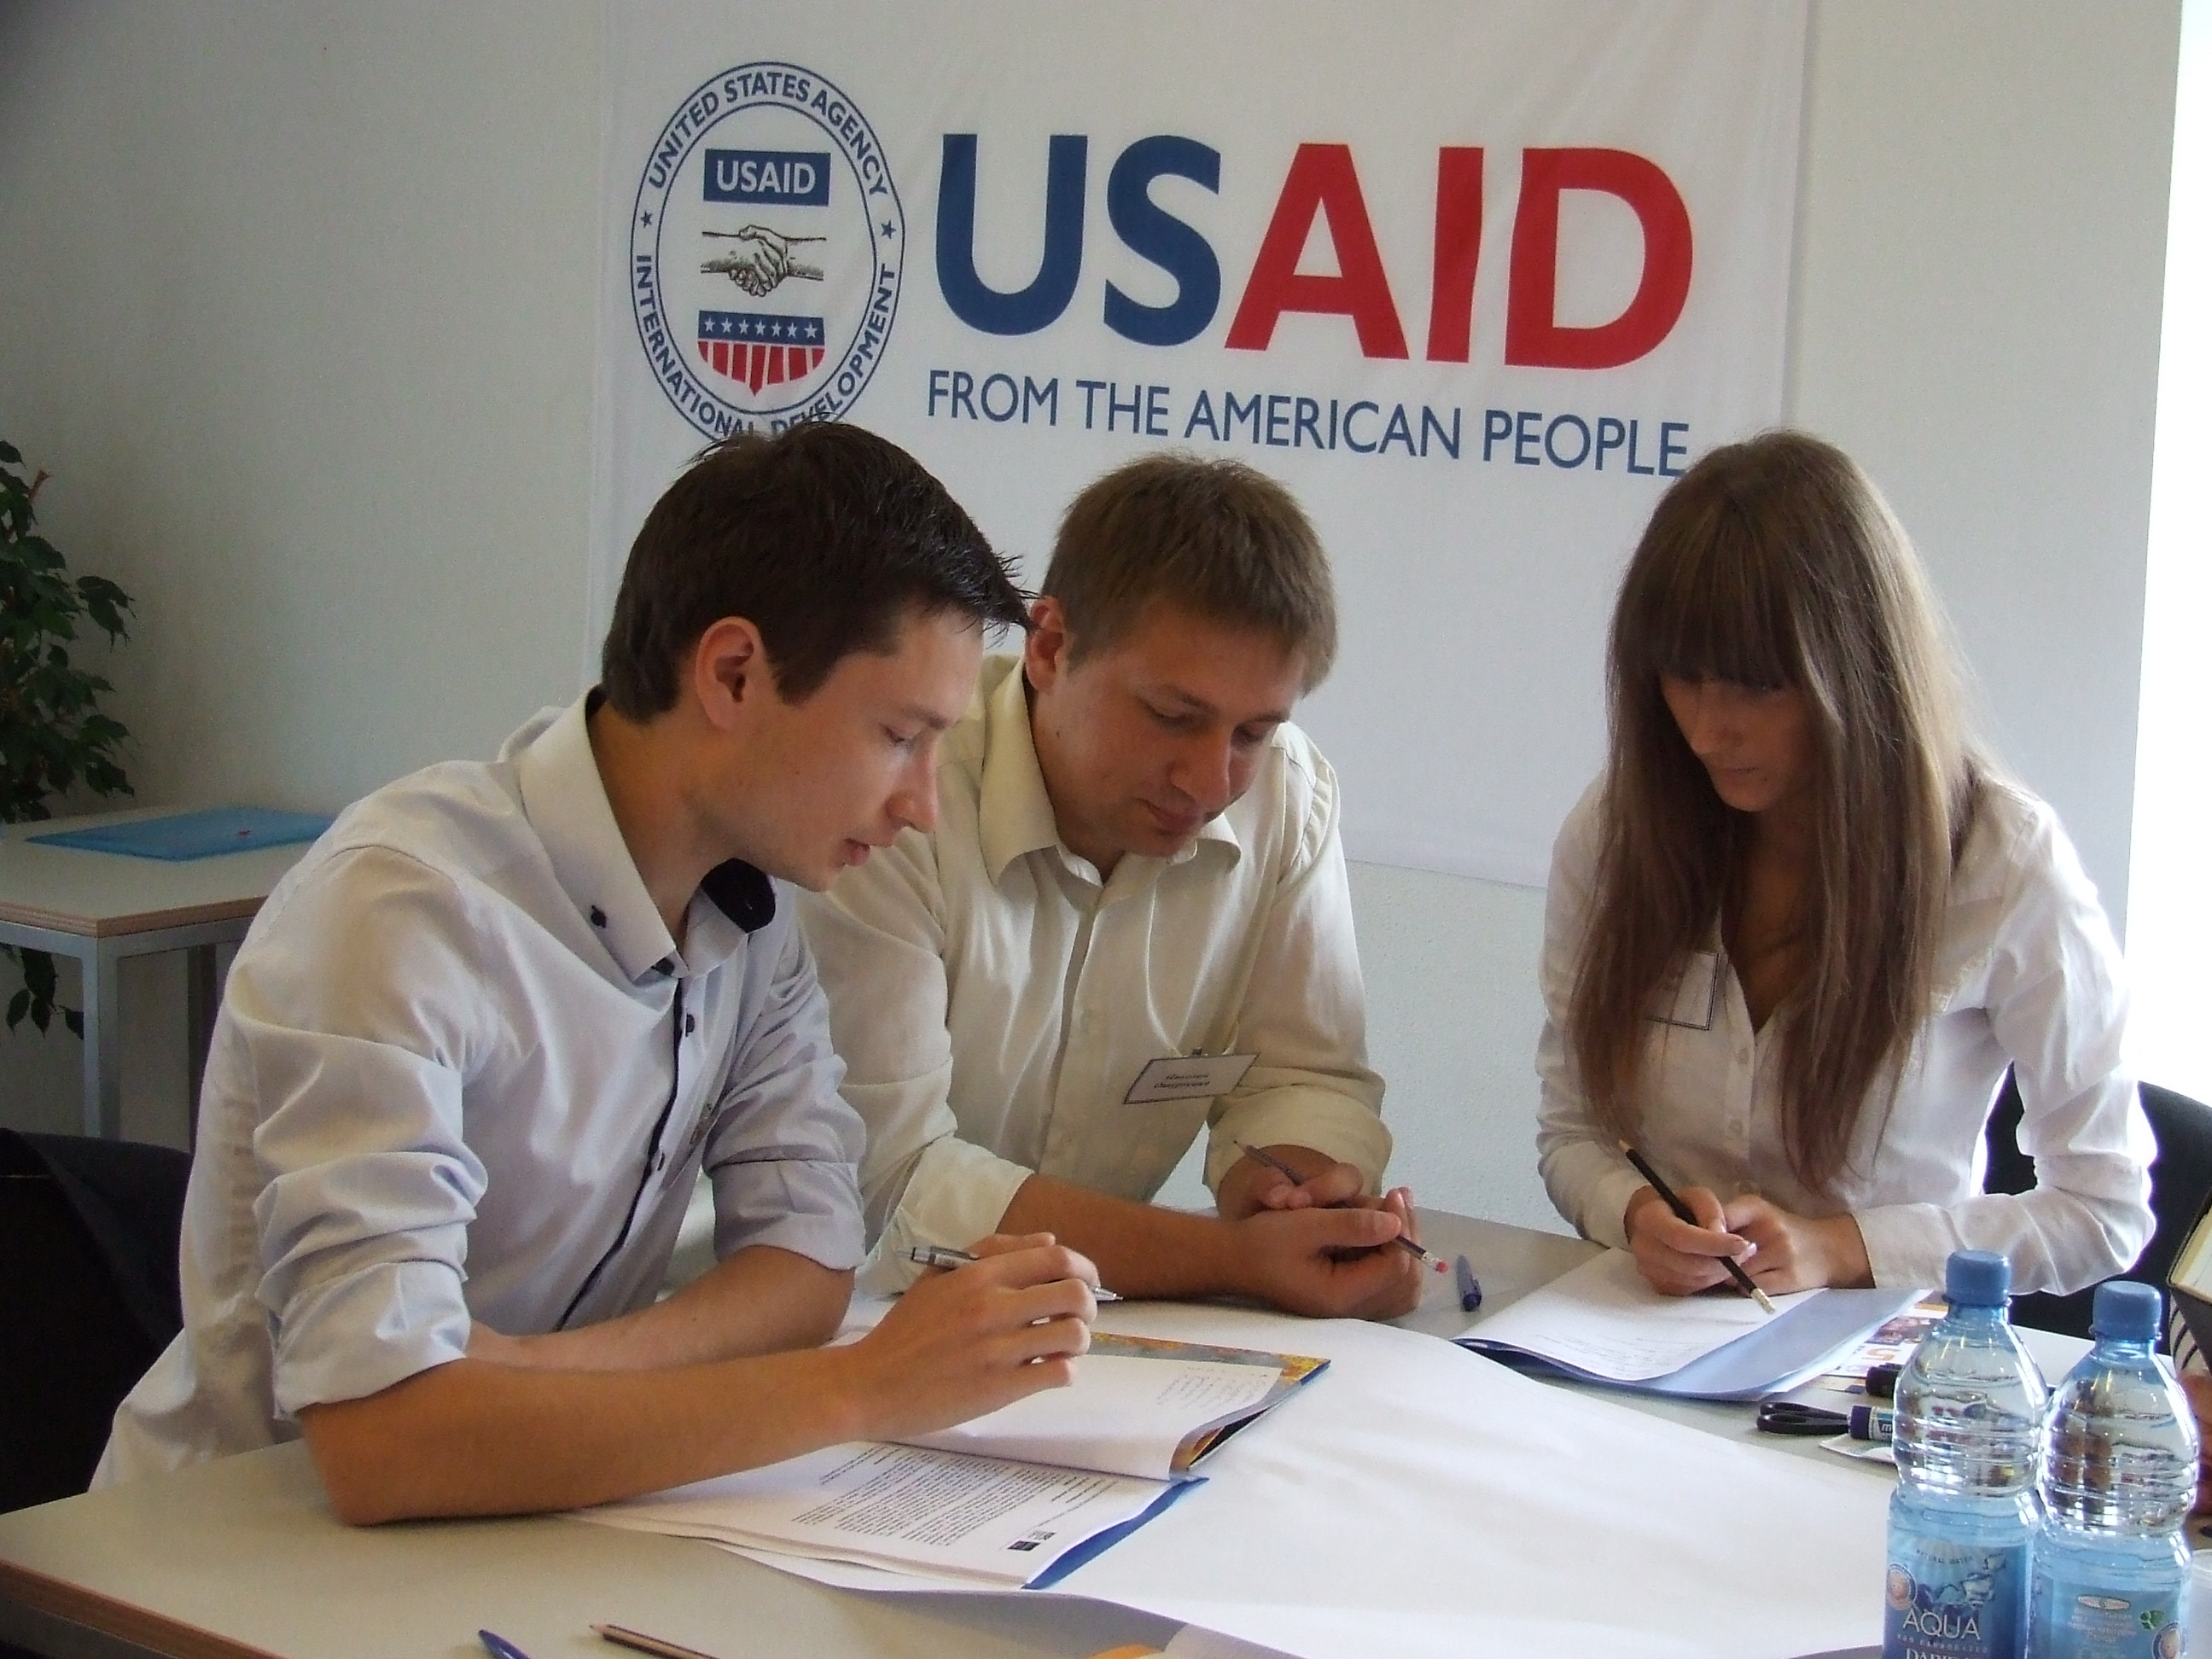 usaid projects Governmental agency providing technical assistance and funding throughout the world established in 1961 by president john f kennedy, usaid is a federally funded development agency of the.